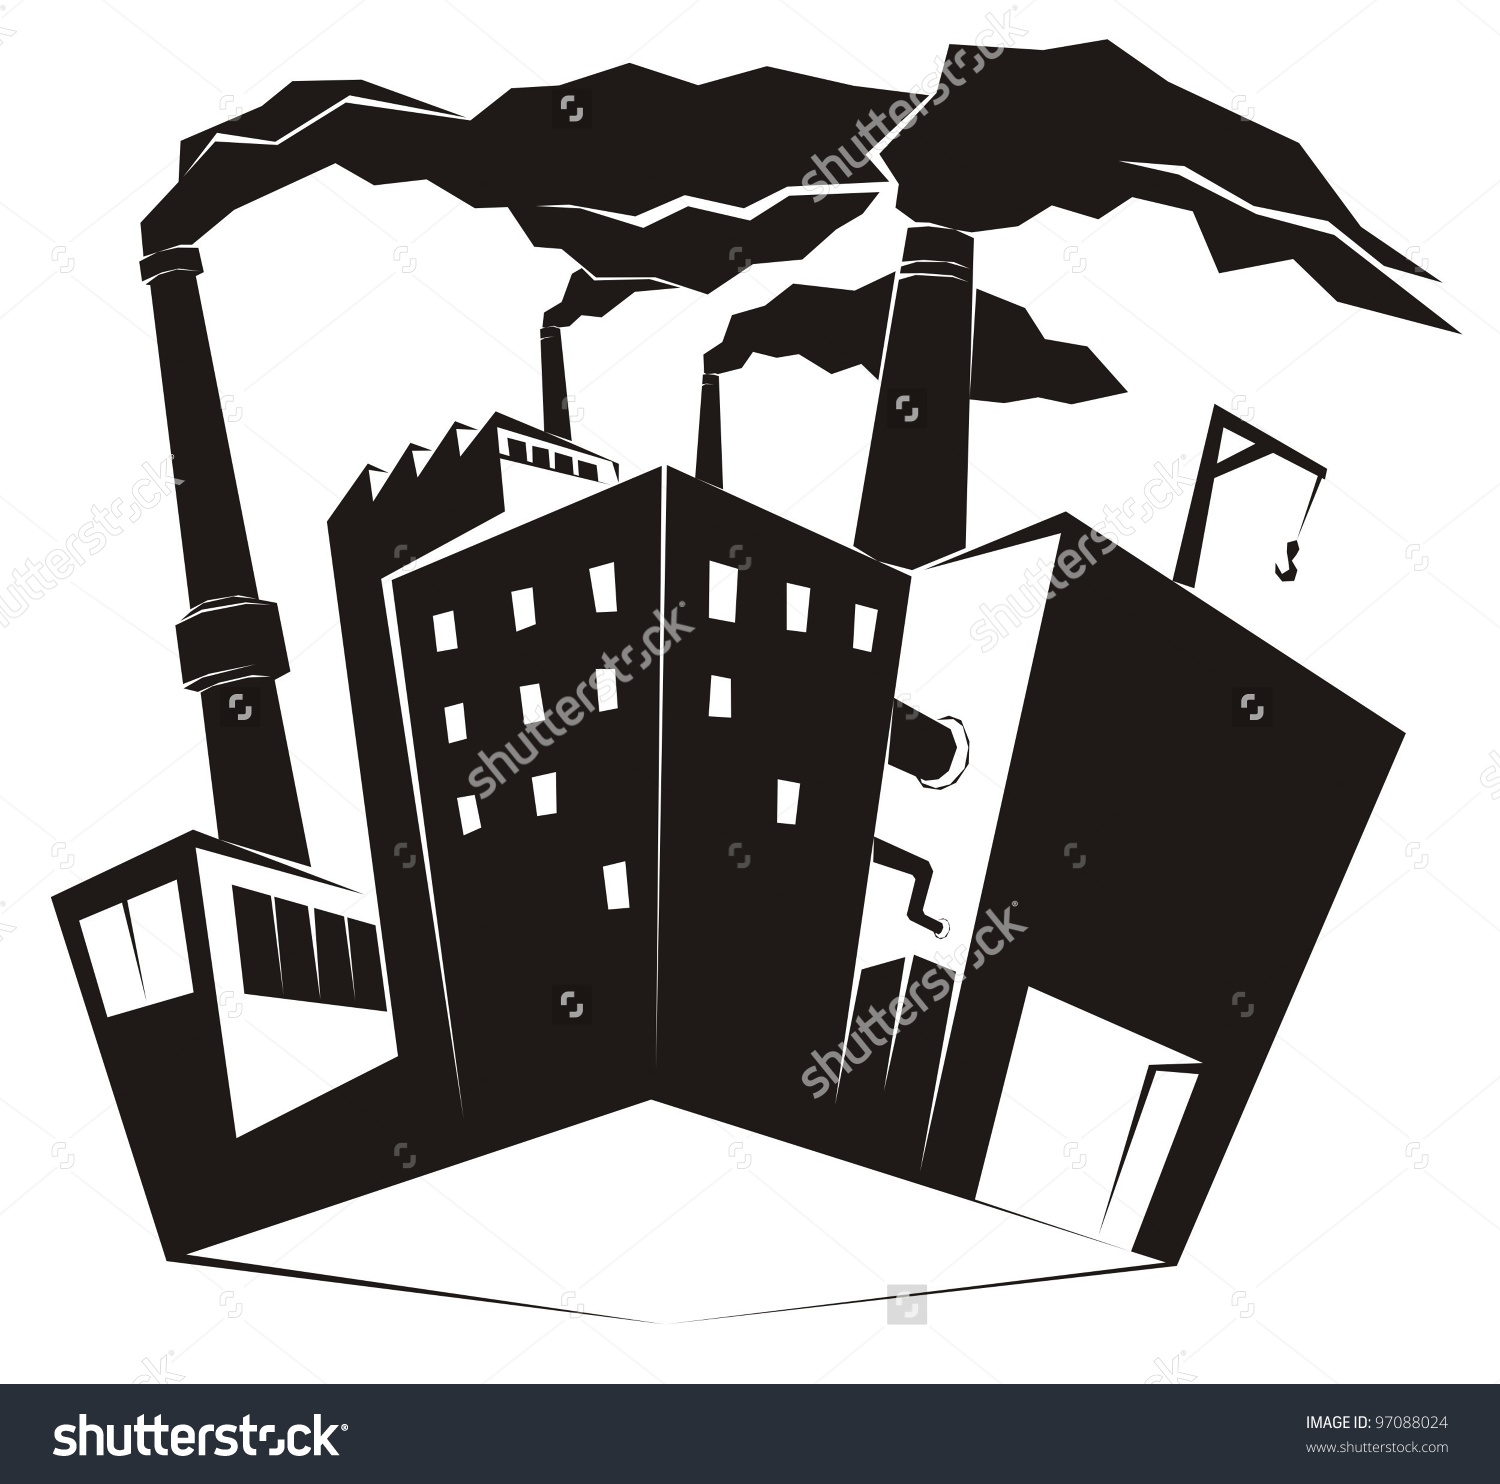 Heavy Industrial Site Factory Black Smoke Stock Vector 97088024.